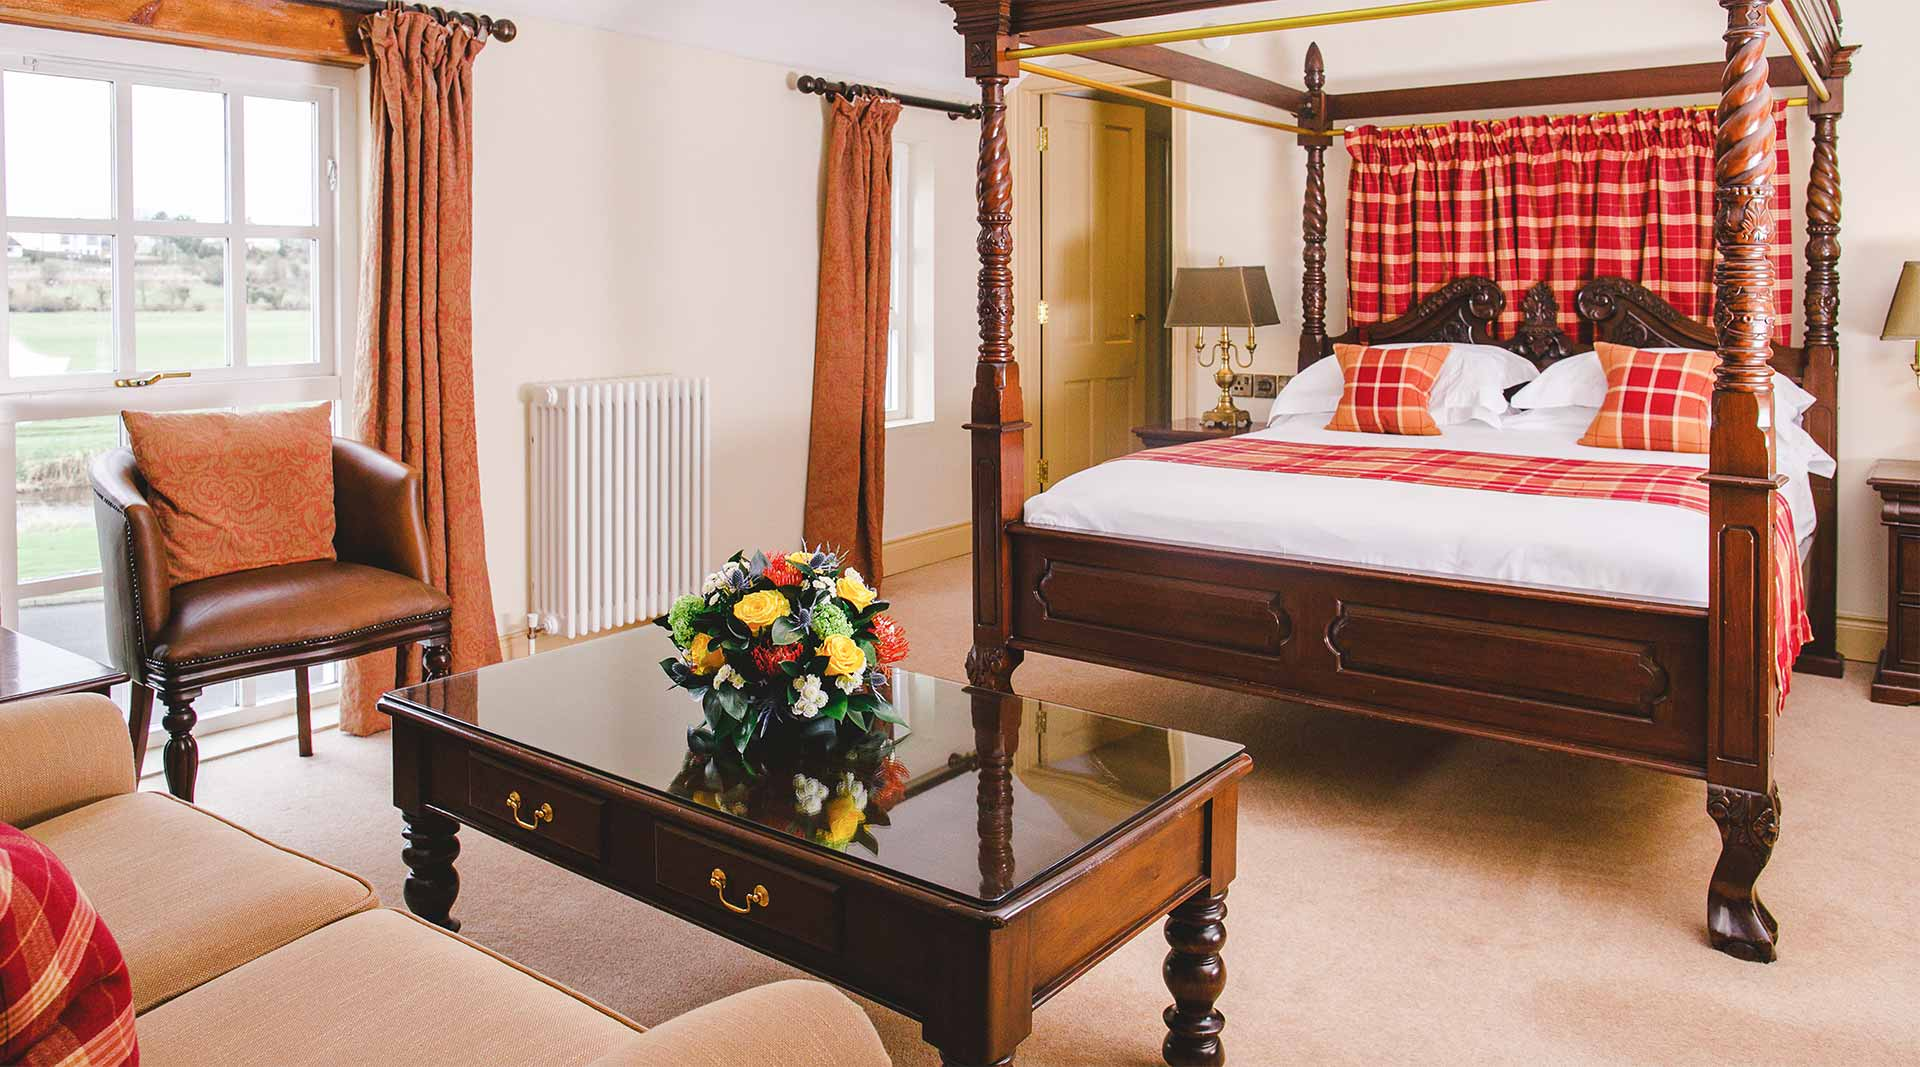 Bushmills Inn luxurious rooms